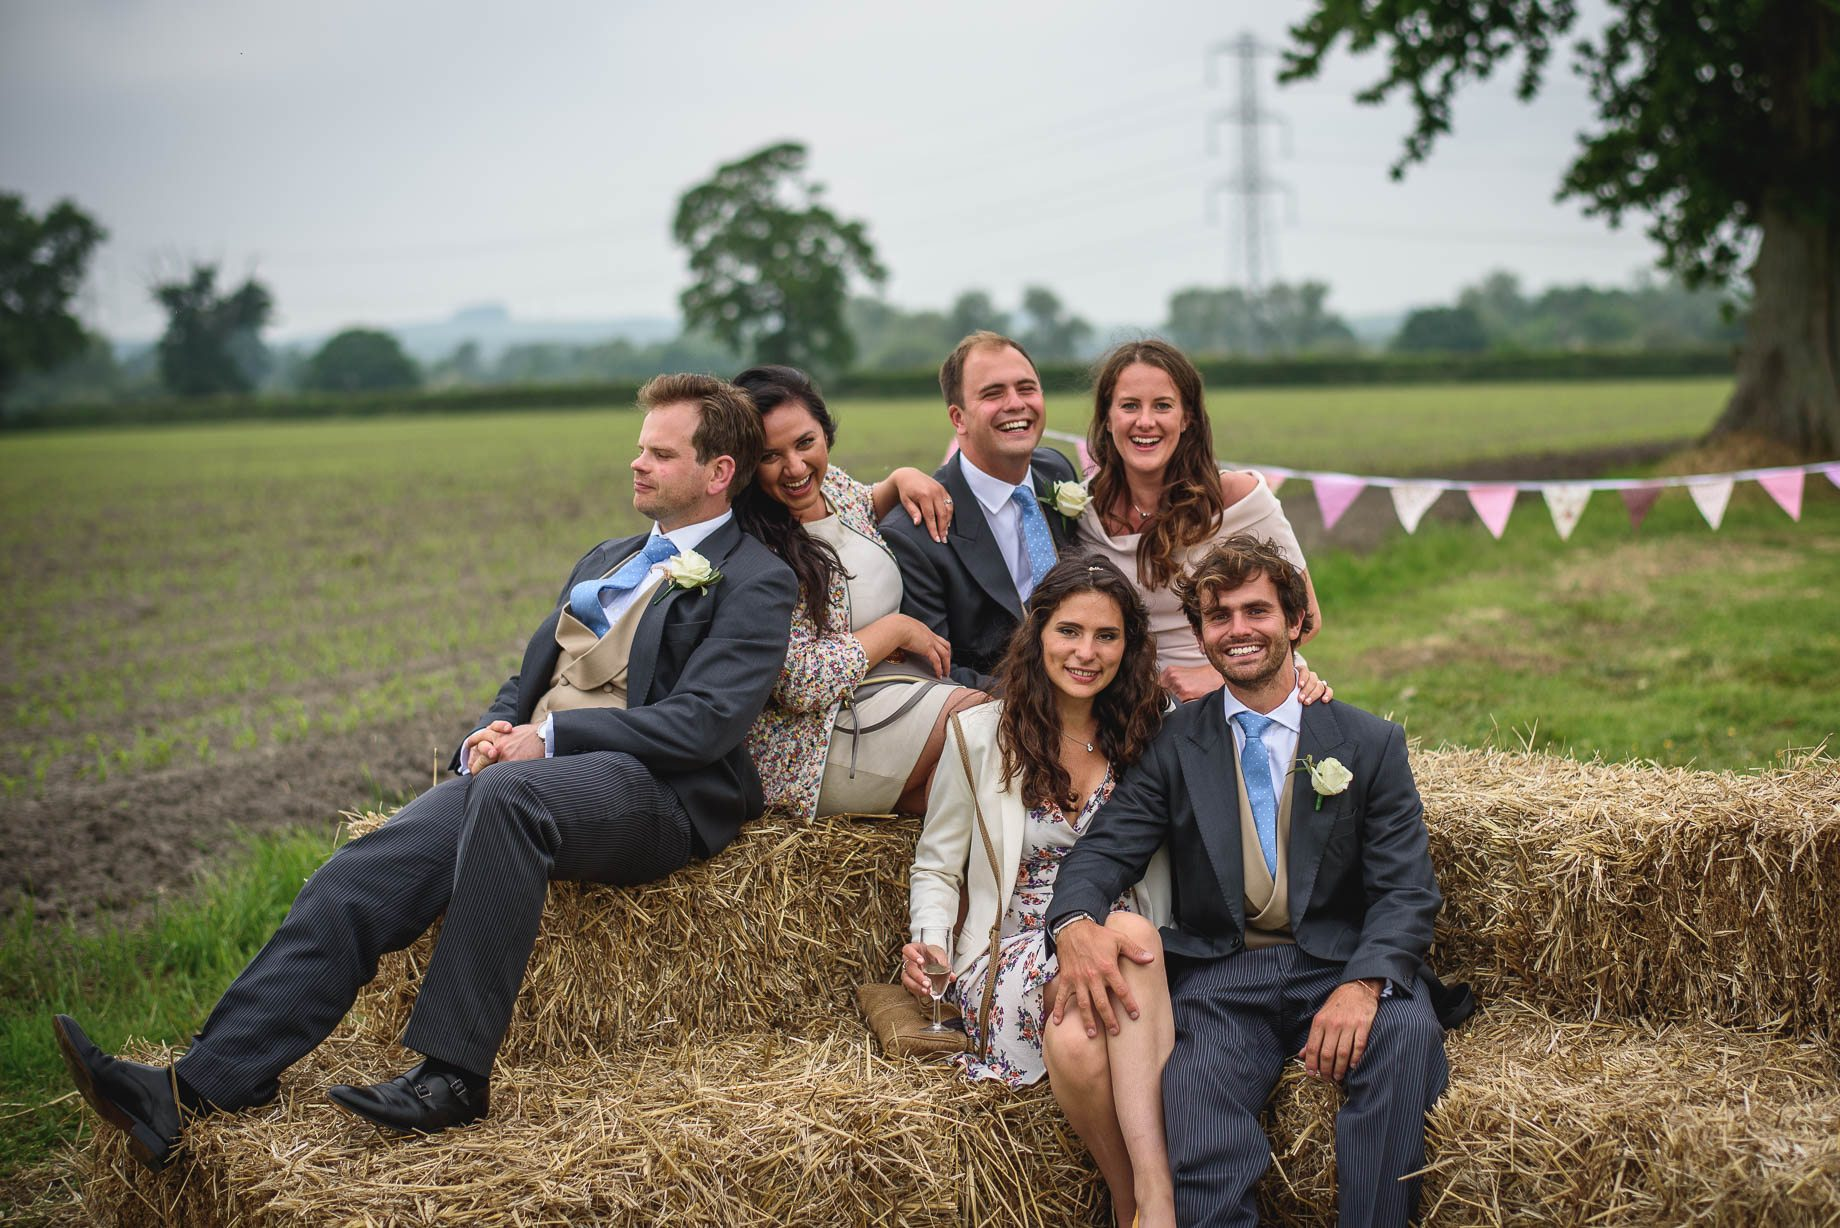 Wiltshire wedding photography by Guy Collier - Lucie and Matt (122 of 198)